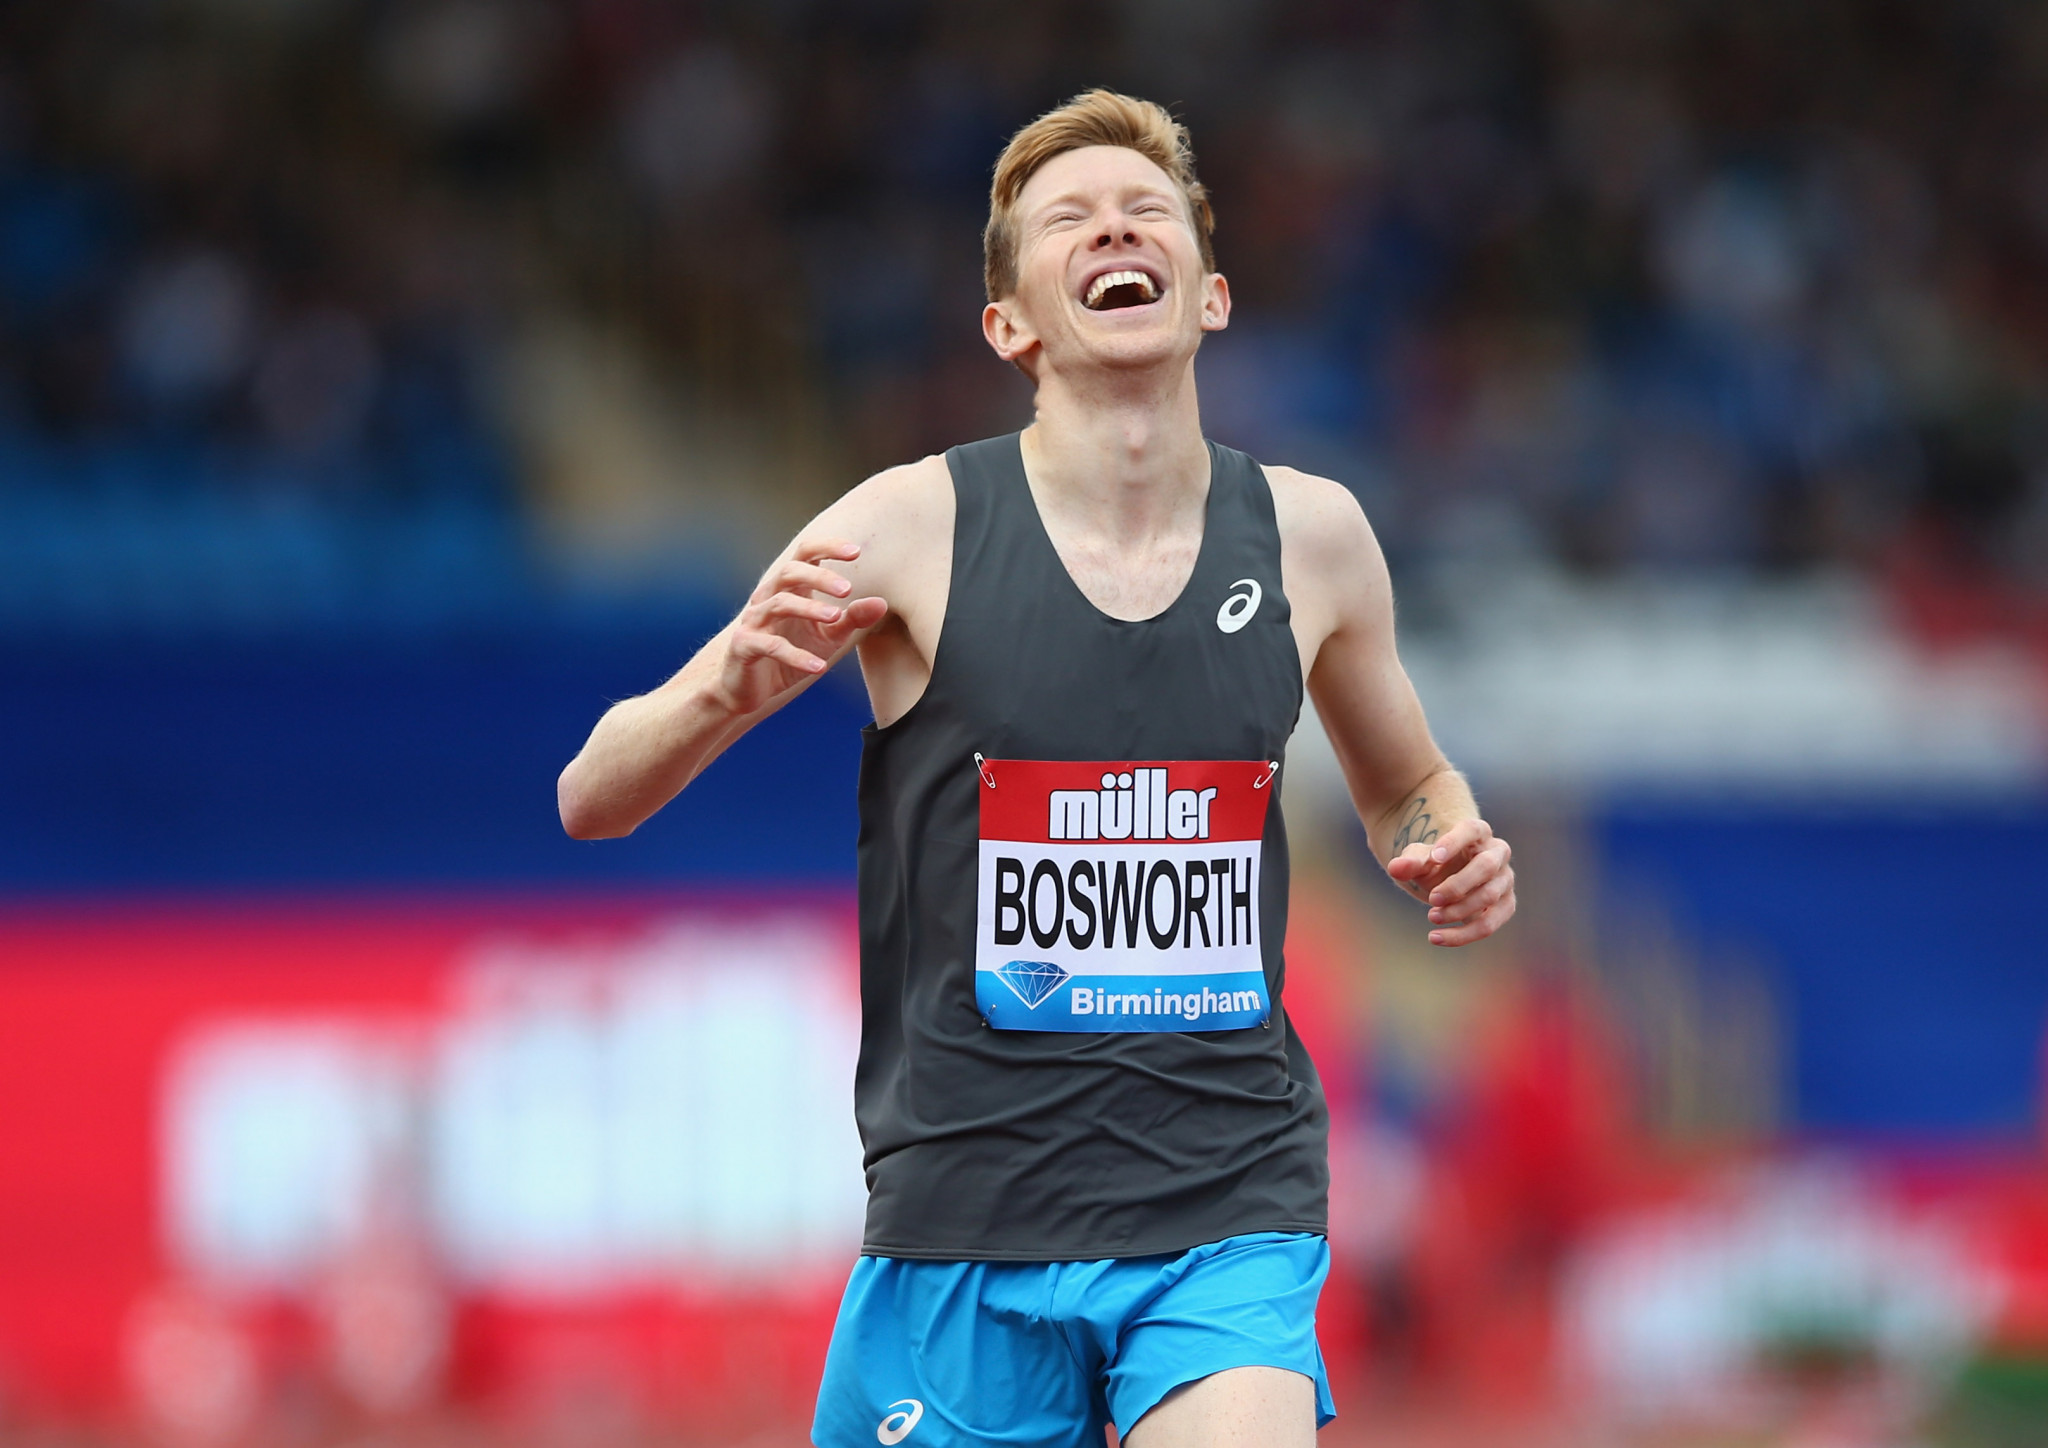 British rising star Bosworth believes race-walking must embrace relay and track events